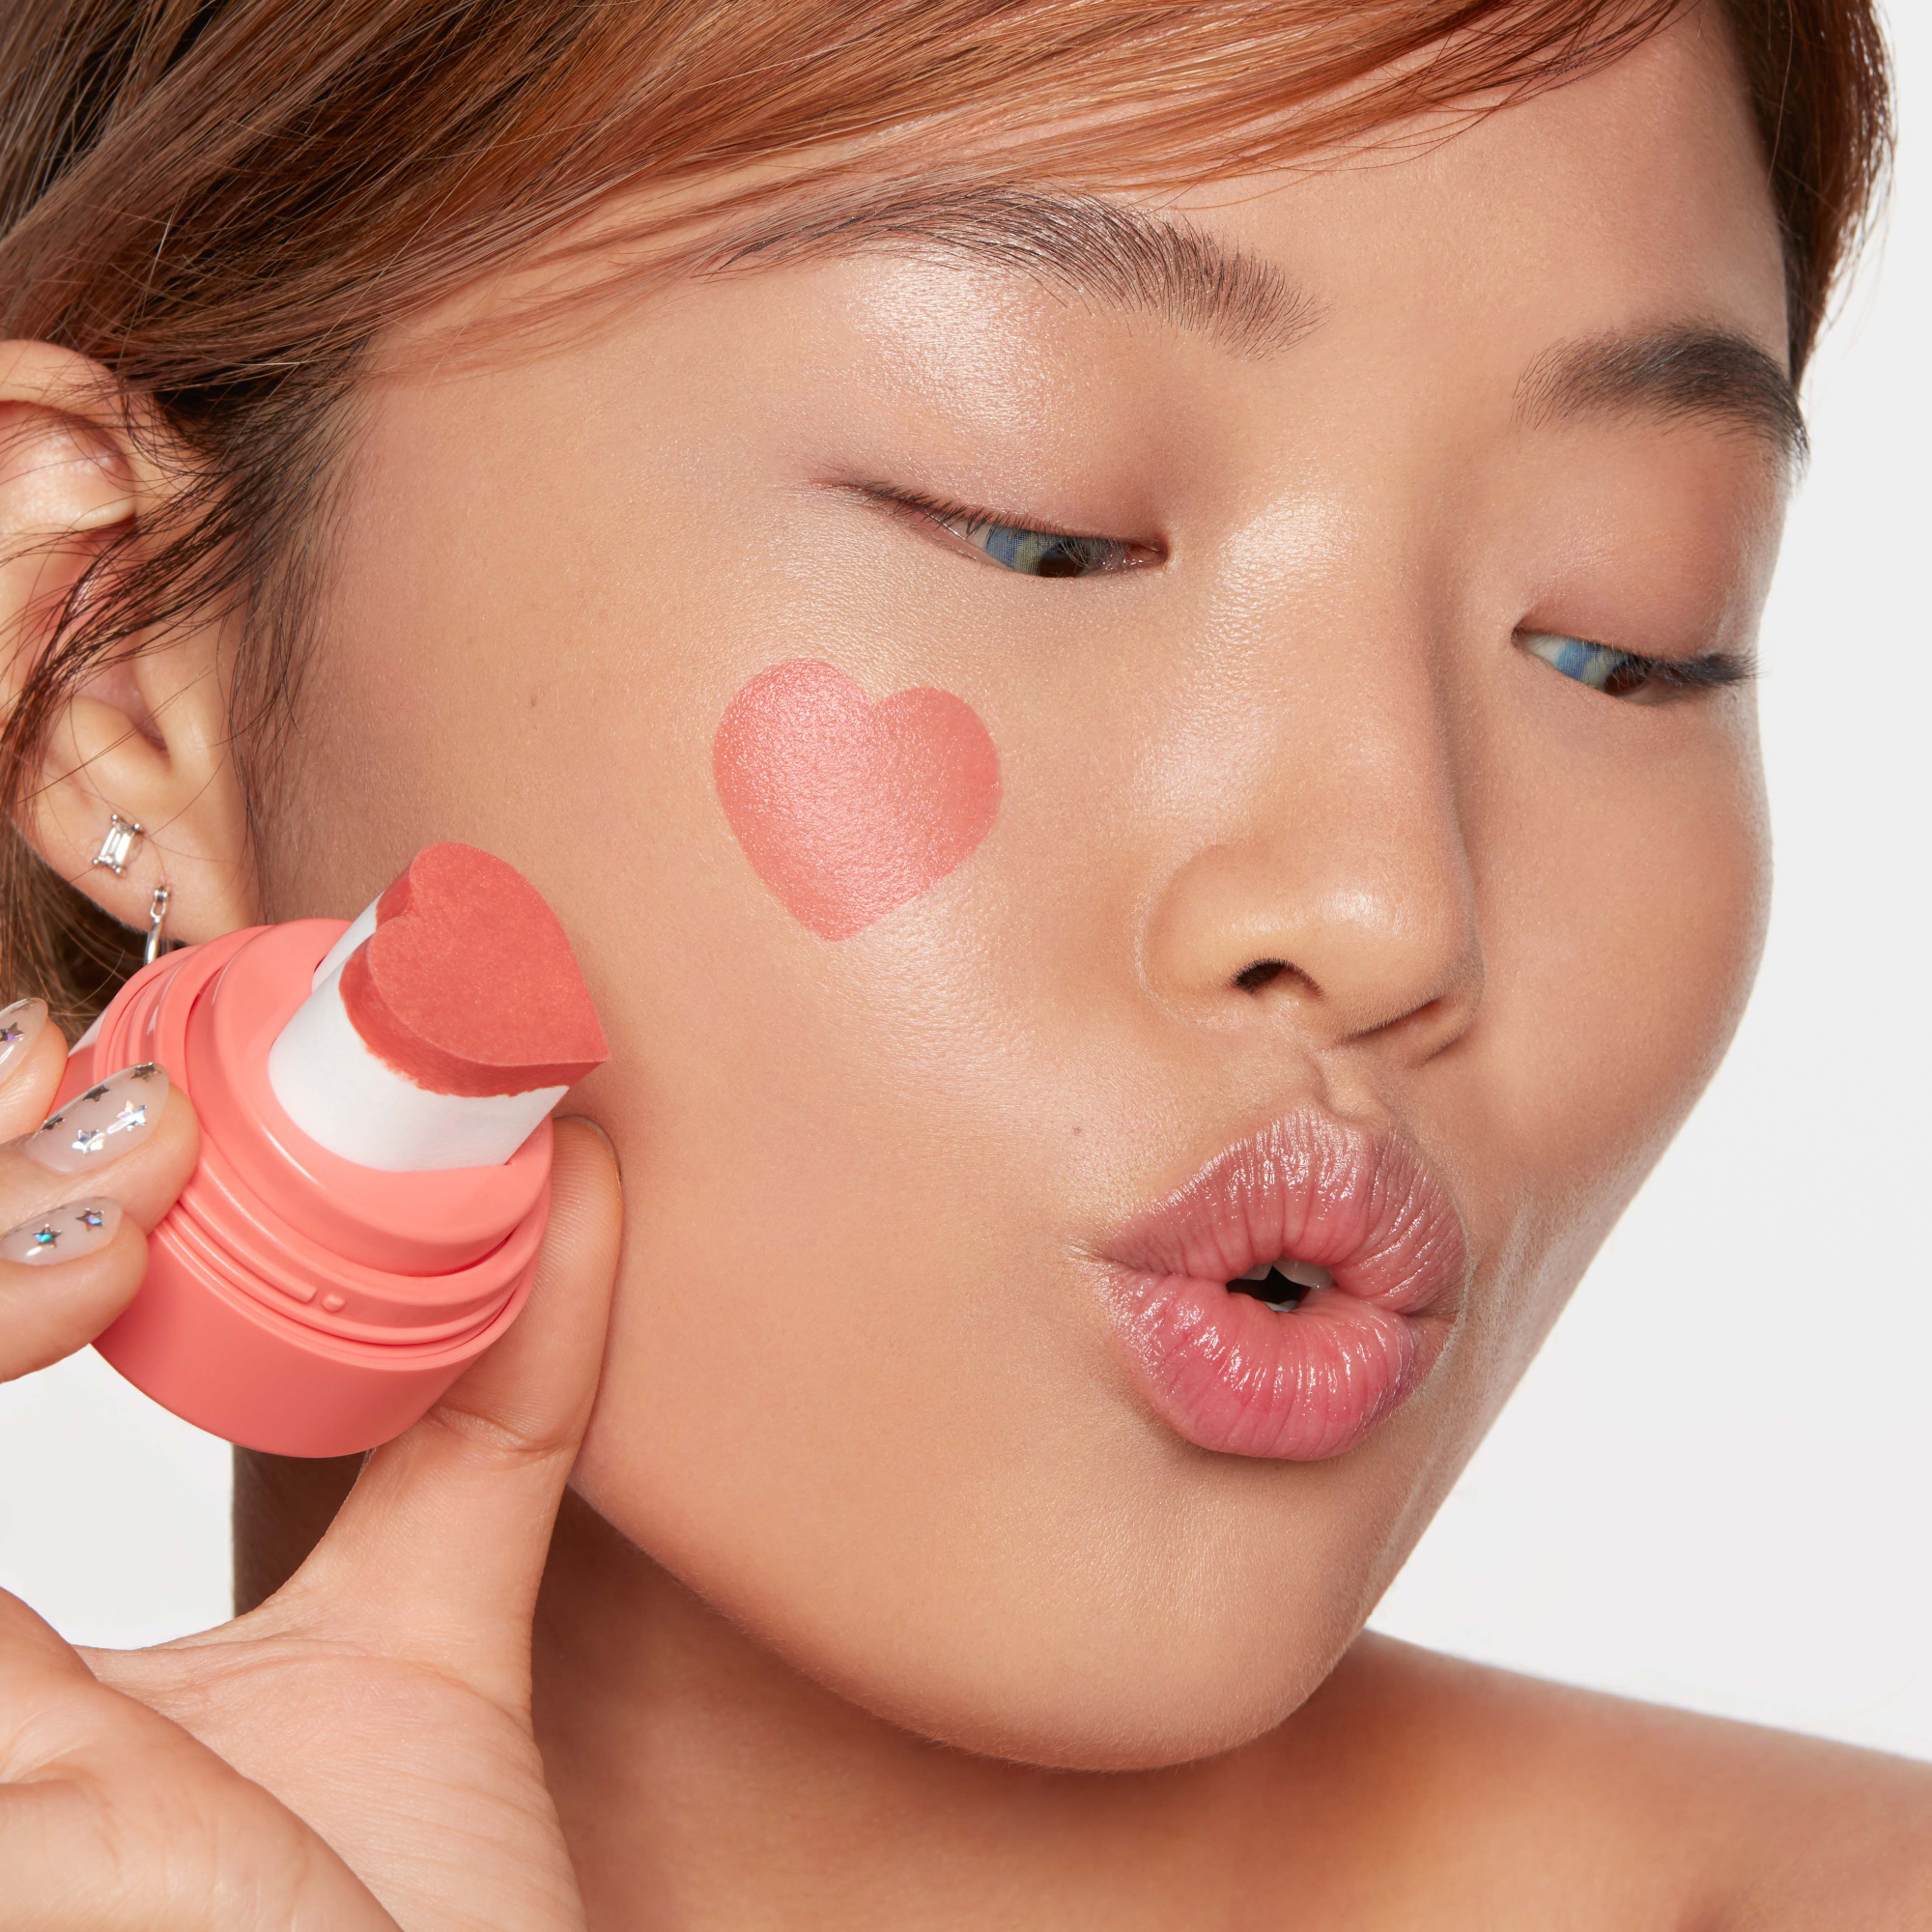 valentine's day gifts kaja heart-shaped makeup blush